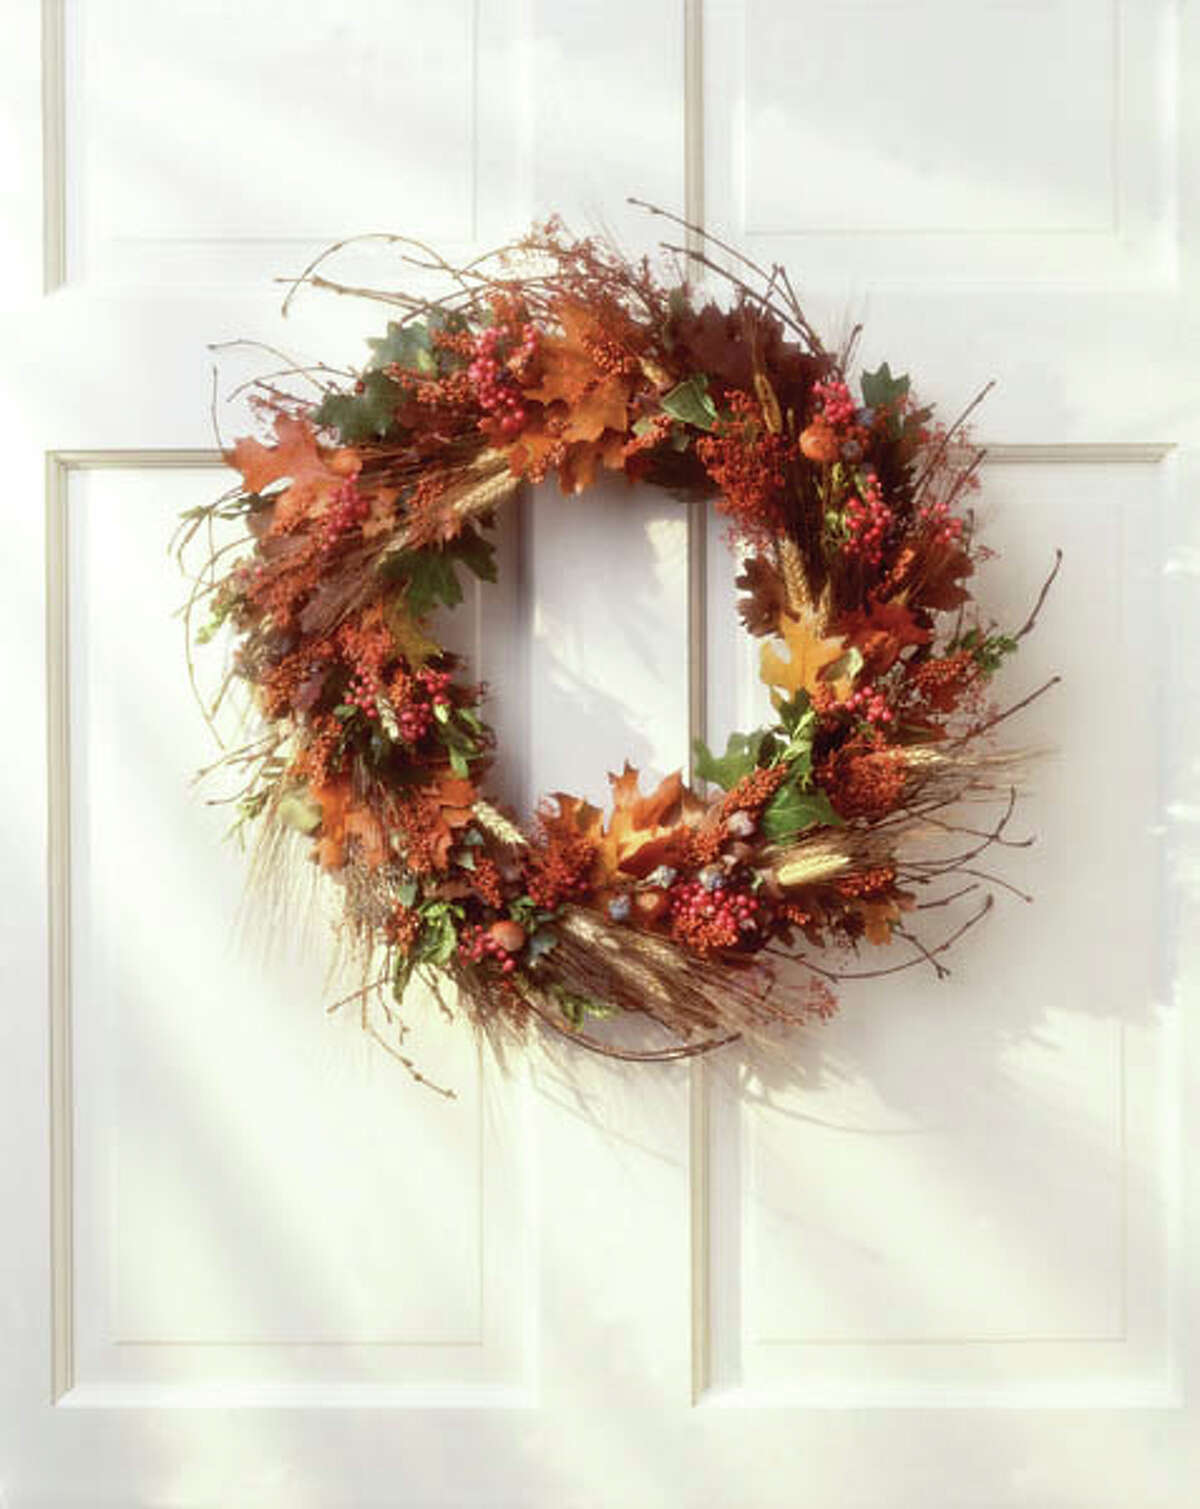 2. Create an autumn wreath Pinterest is a great place to find wreath inspiration and how-to tips.